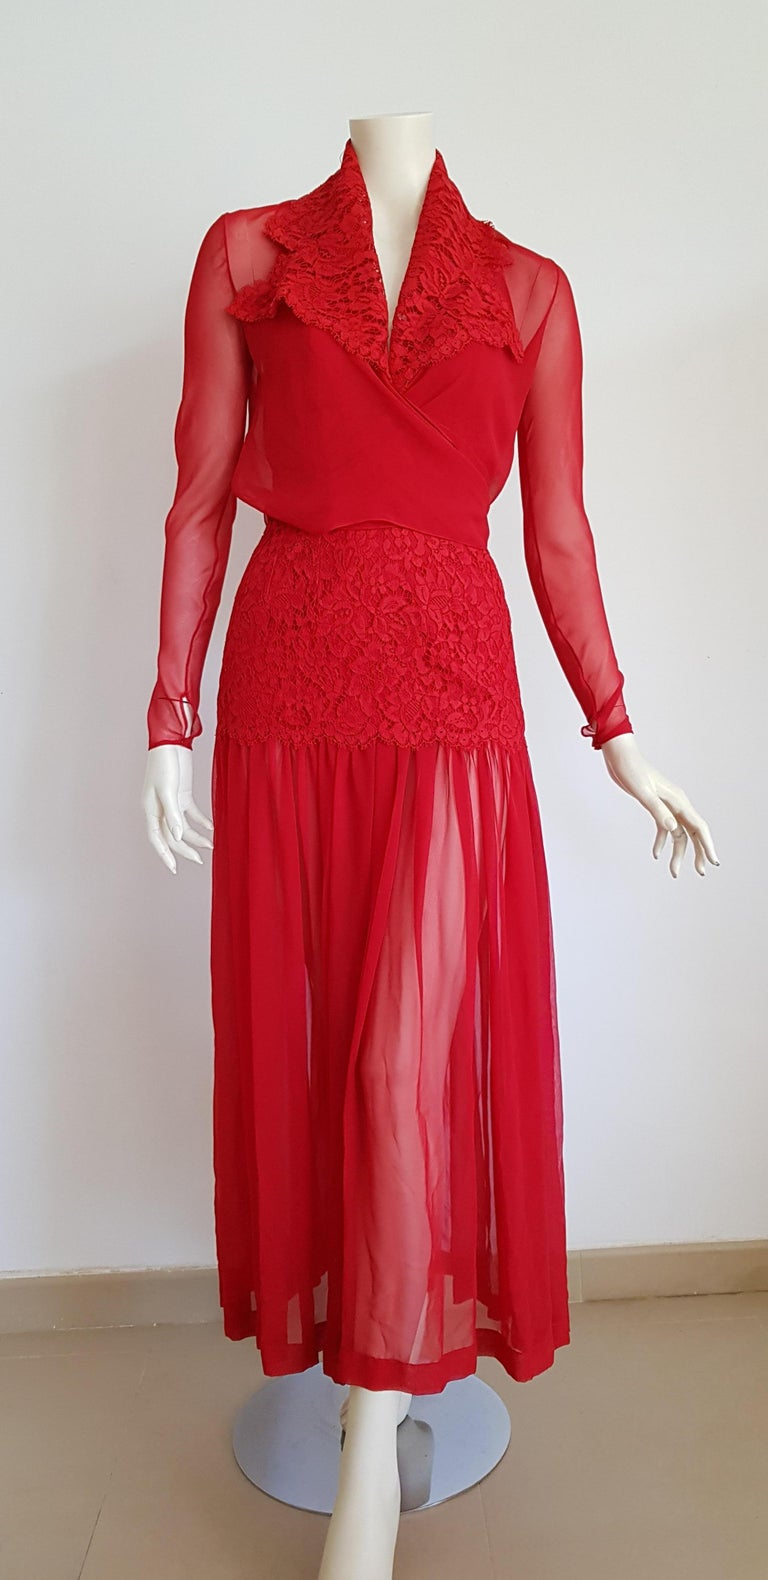 Isabelle ALLARD Paris, couture, chiffon silk crêpe blouse, slightly transparent skirt, cest and waistband cotton lace, red silk dress - Unworn, New.  Isabelle ALLARD is a Paris brand that created only haute couture and selling to international